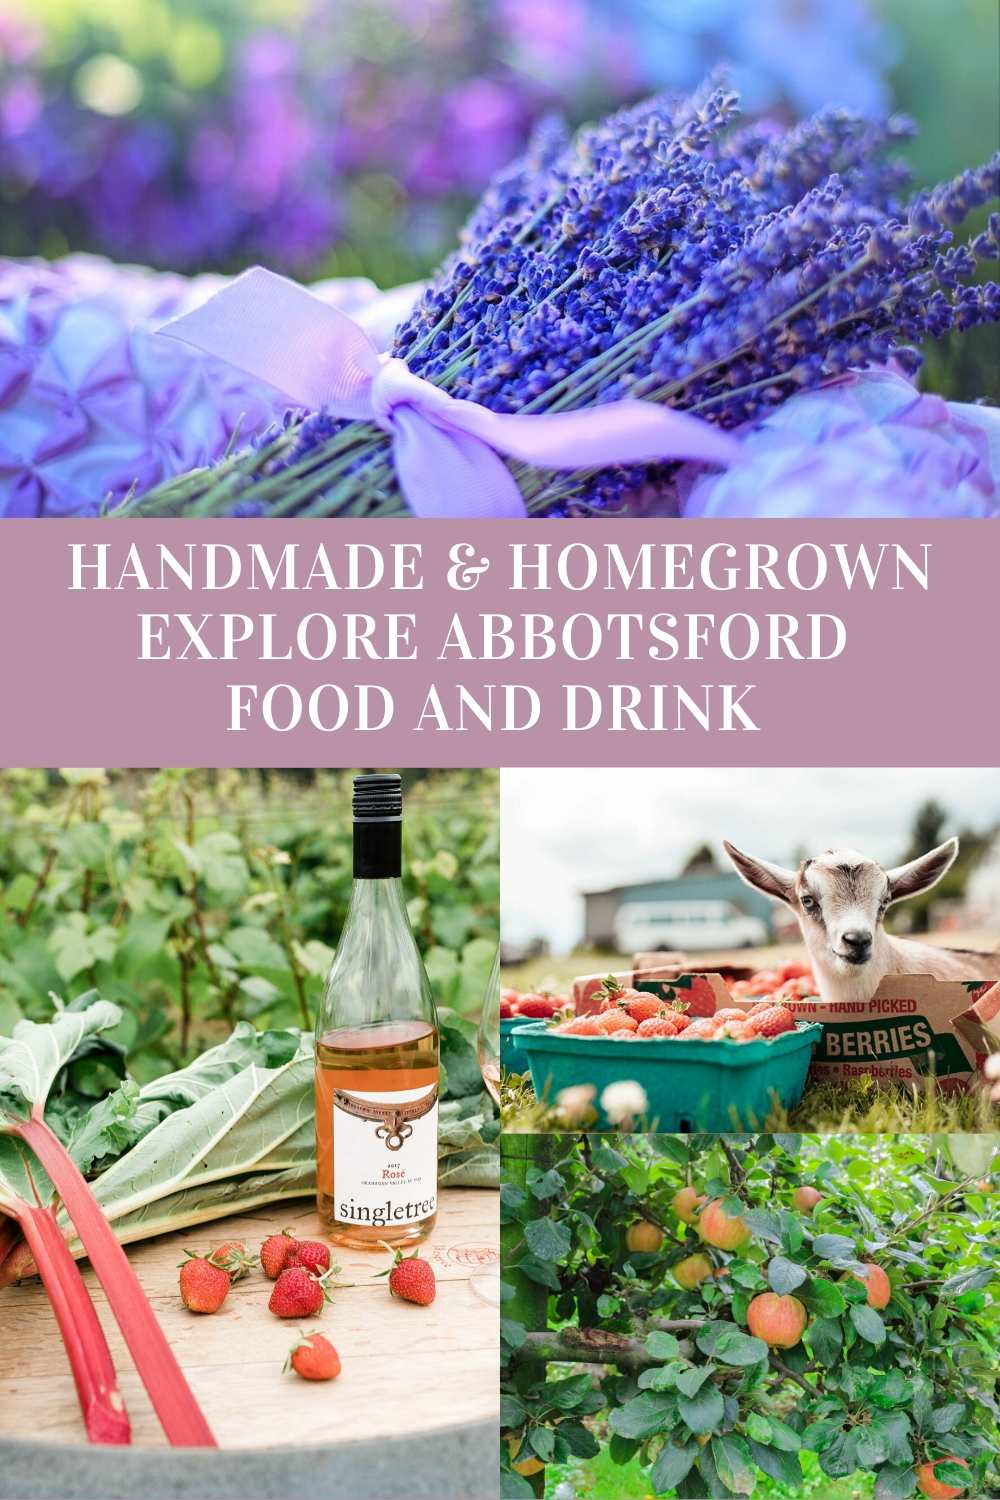 Discover handmade homegrown country harvest in Abbotsford